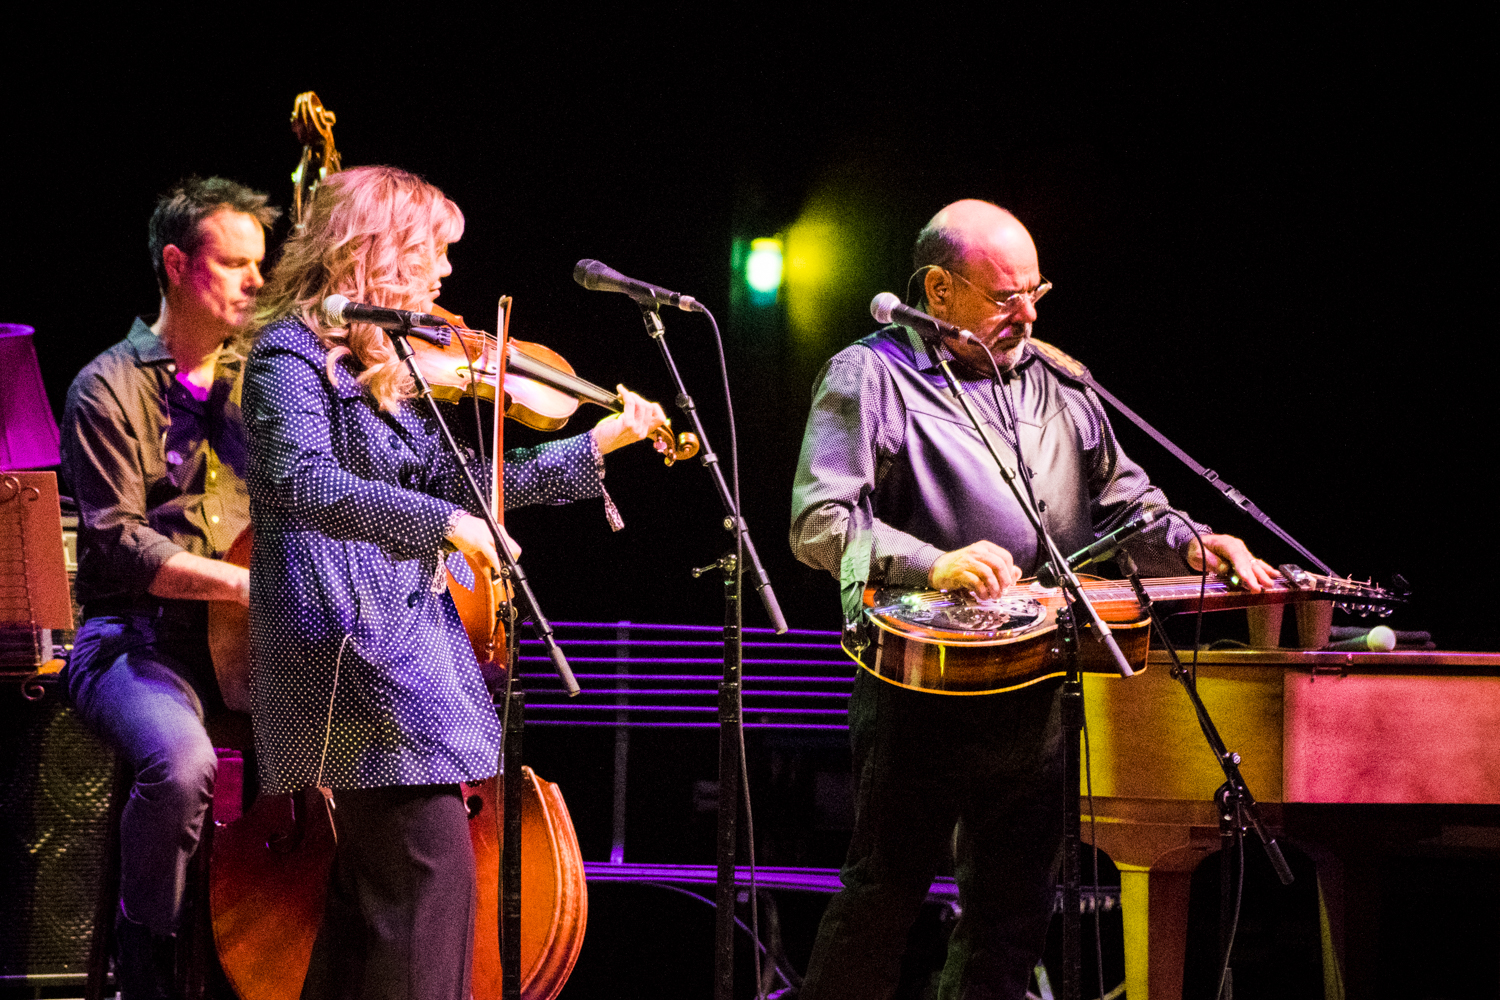 Alison Krauss and Sidney Cox at the Peabody Opera House. Photo by Ryan Ledesma.